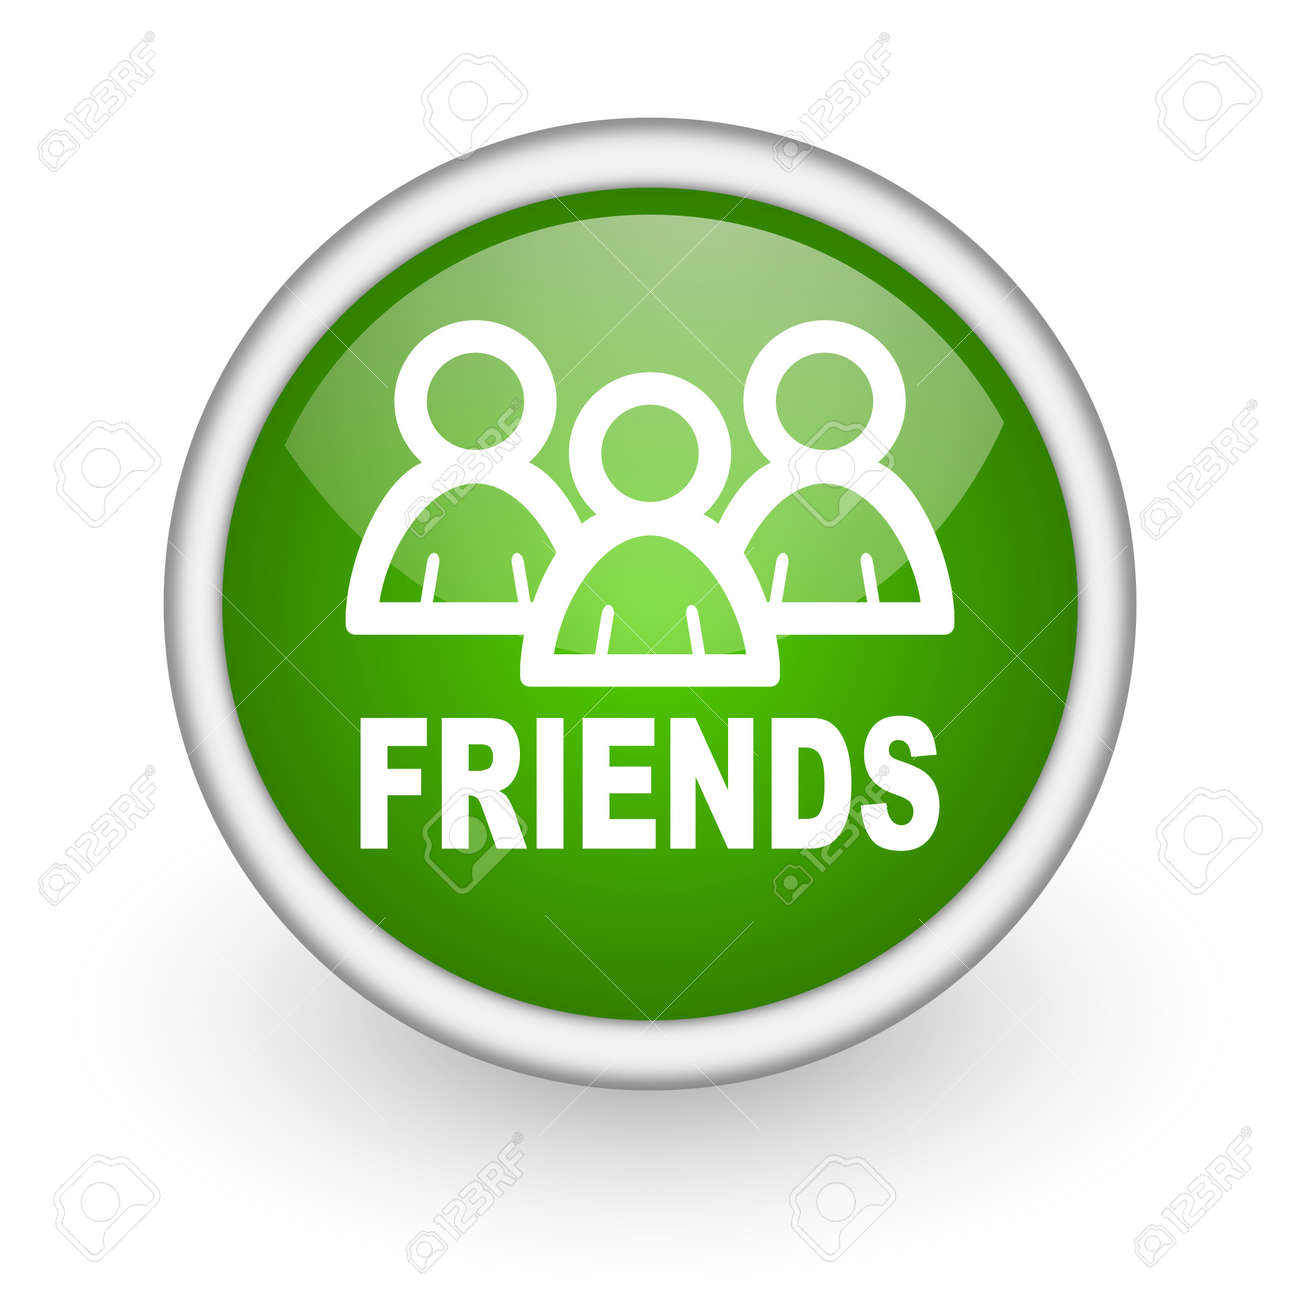 friends green circle glossy web icon on white background Stock Photo - 17648105